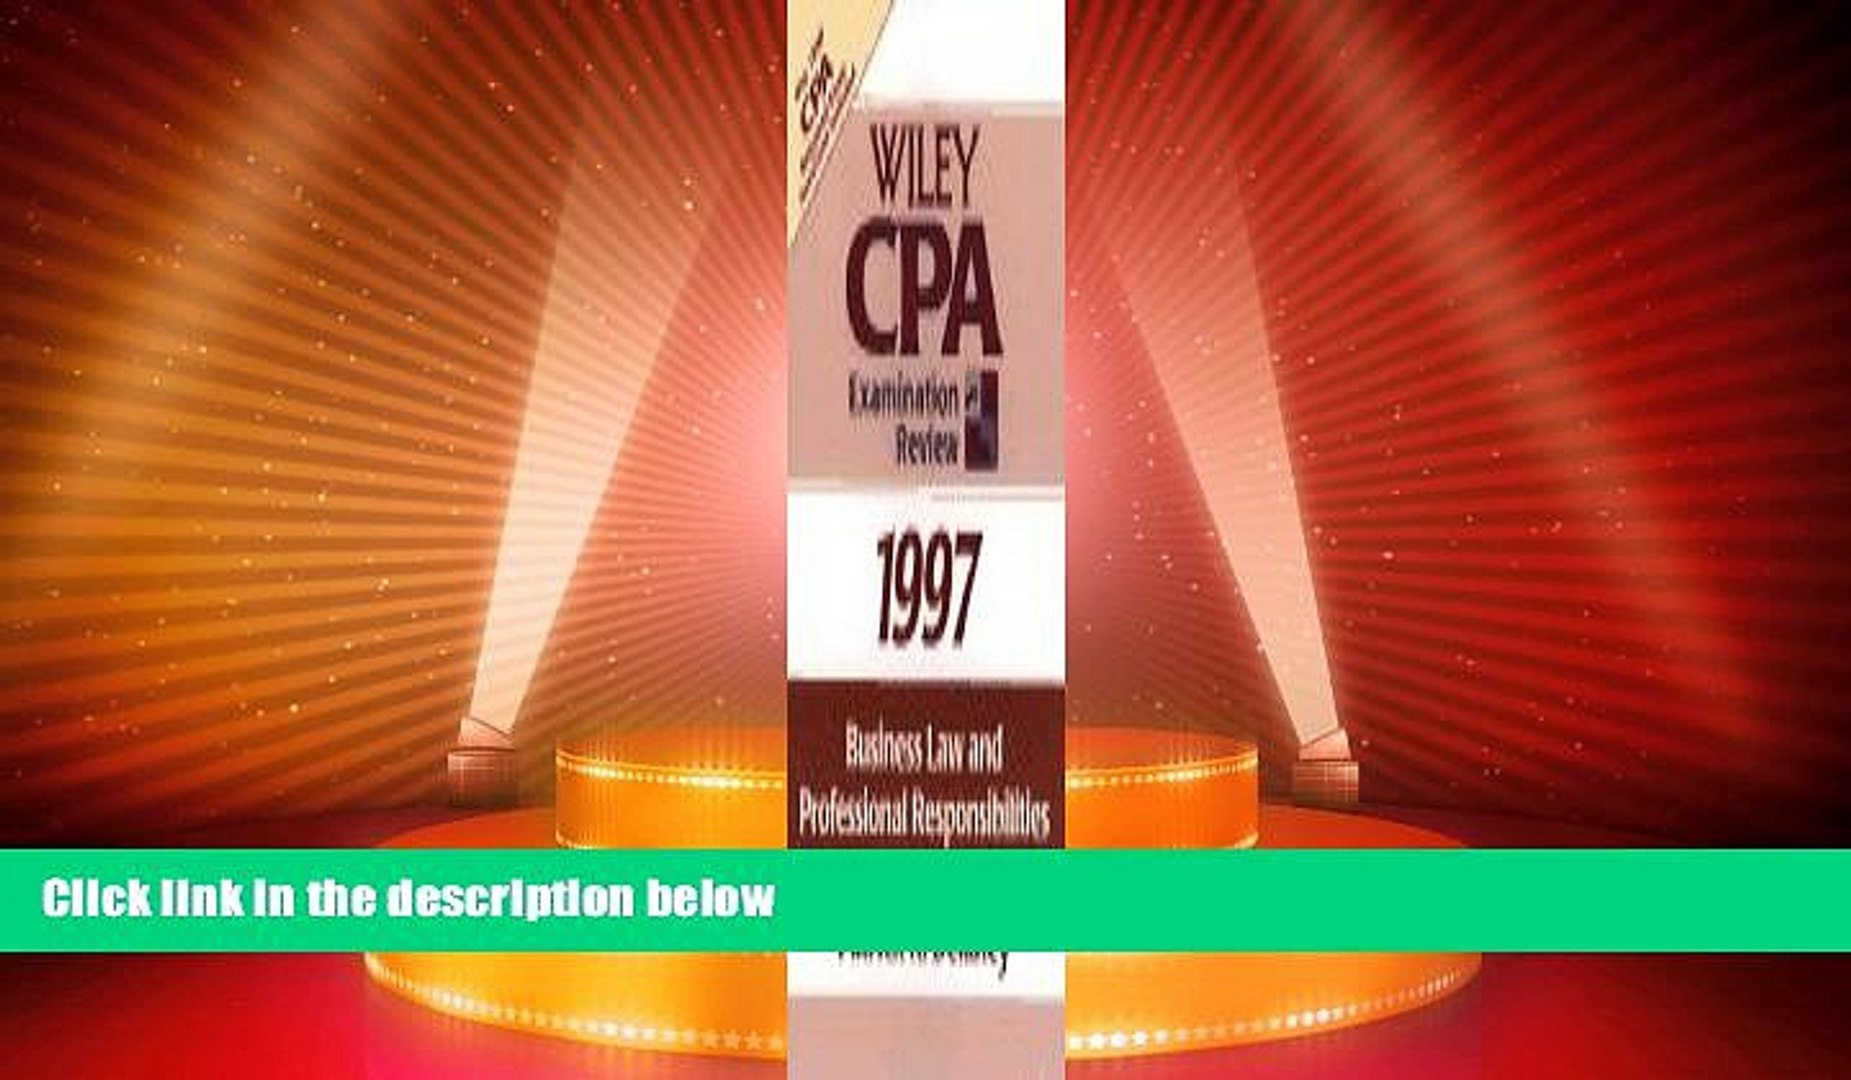 Buy NOW  Business Law and Professional Responsibilities 1997 (Wiley Cpa Examination Review 1997)